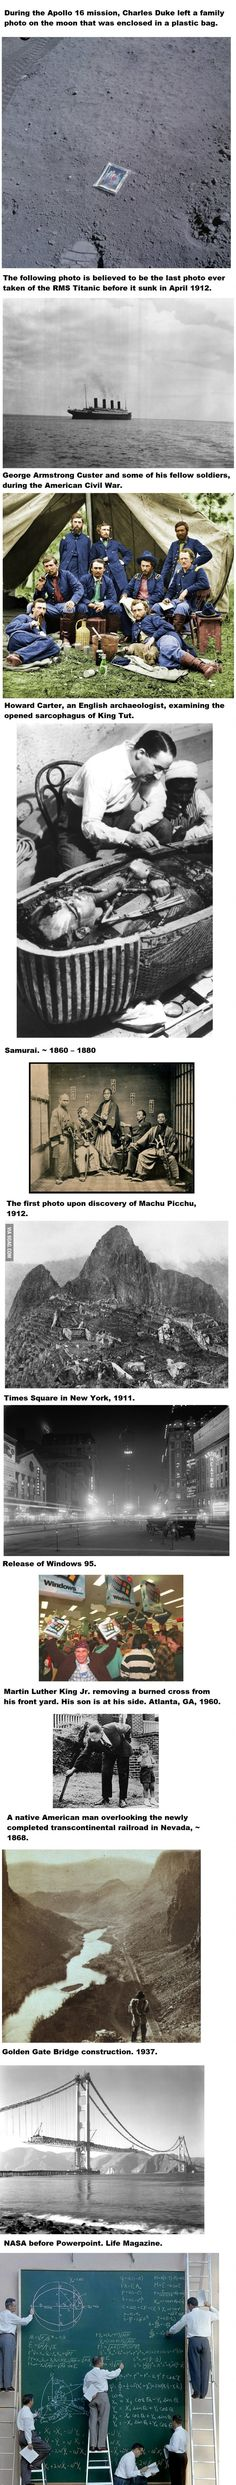 Weird history facts historical photos 60 Ideas for 2019 Old Pictures, Best Funny Pictures, Old Photos, Vintage Photos, Vintage Cars, Weird History Facts, Weird Facts, Fun Facts, Strange History